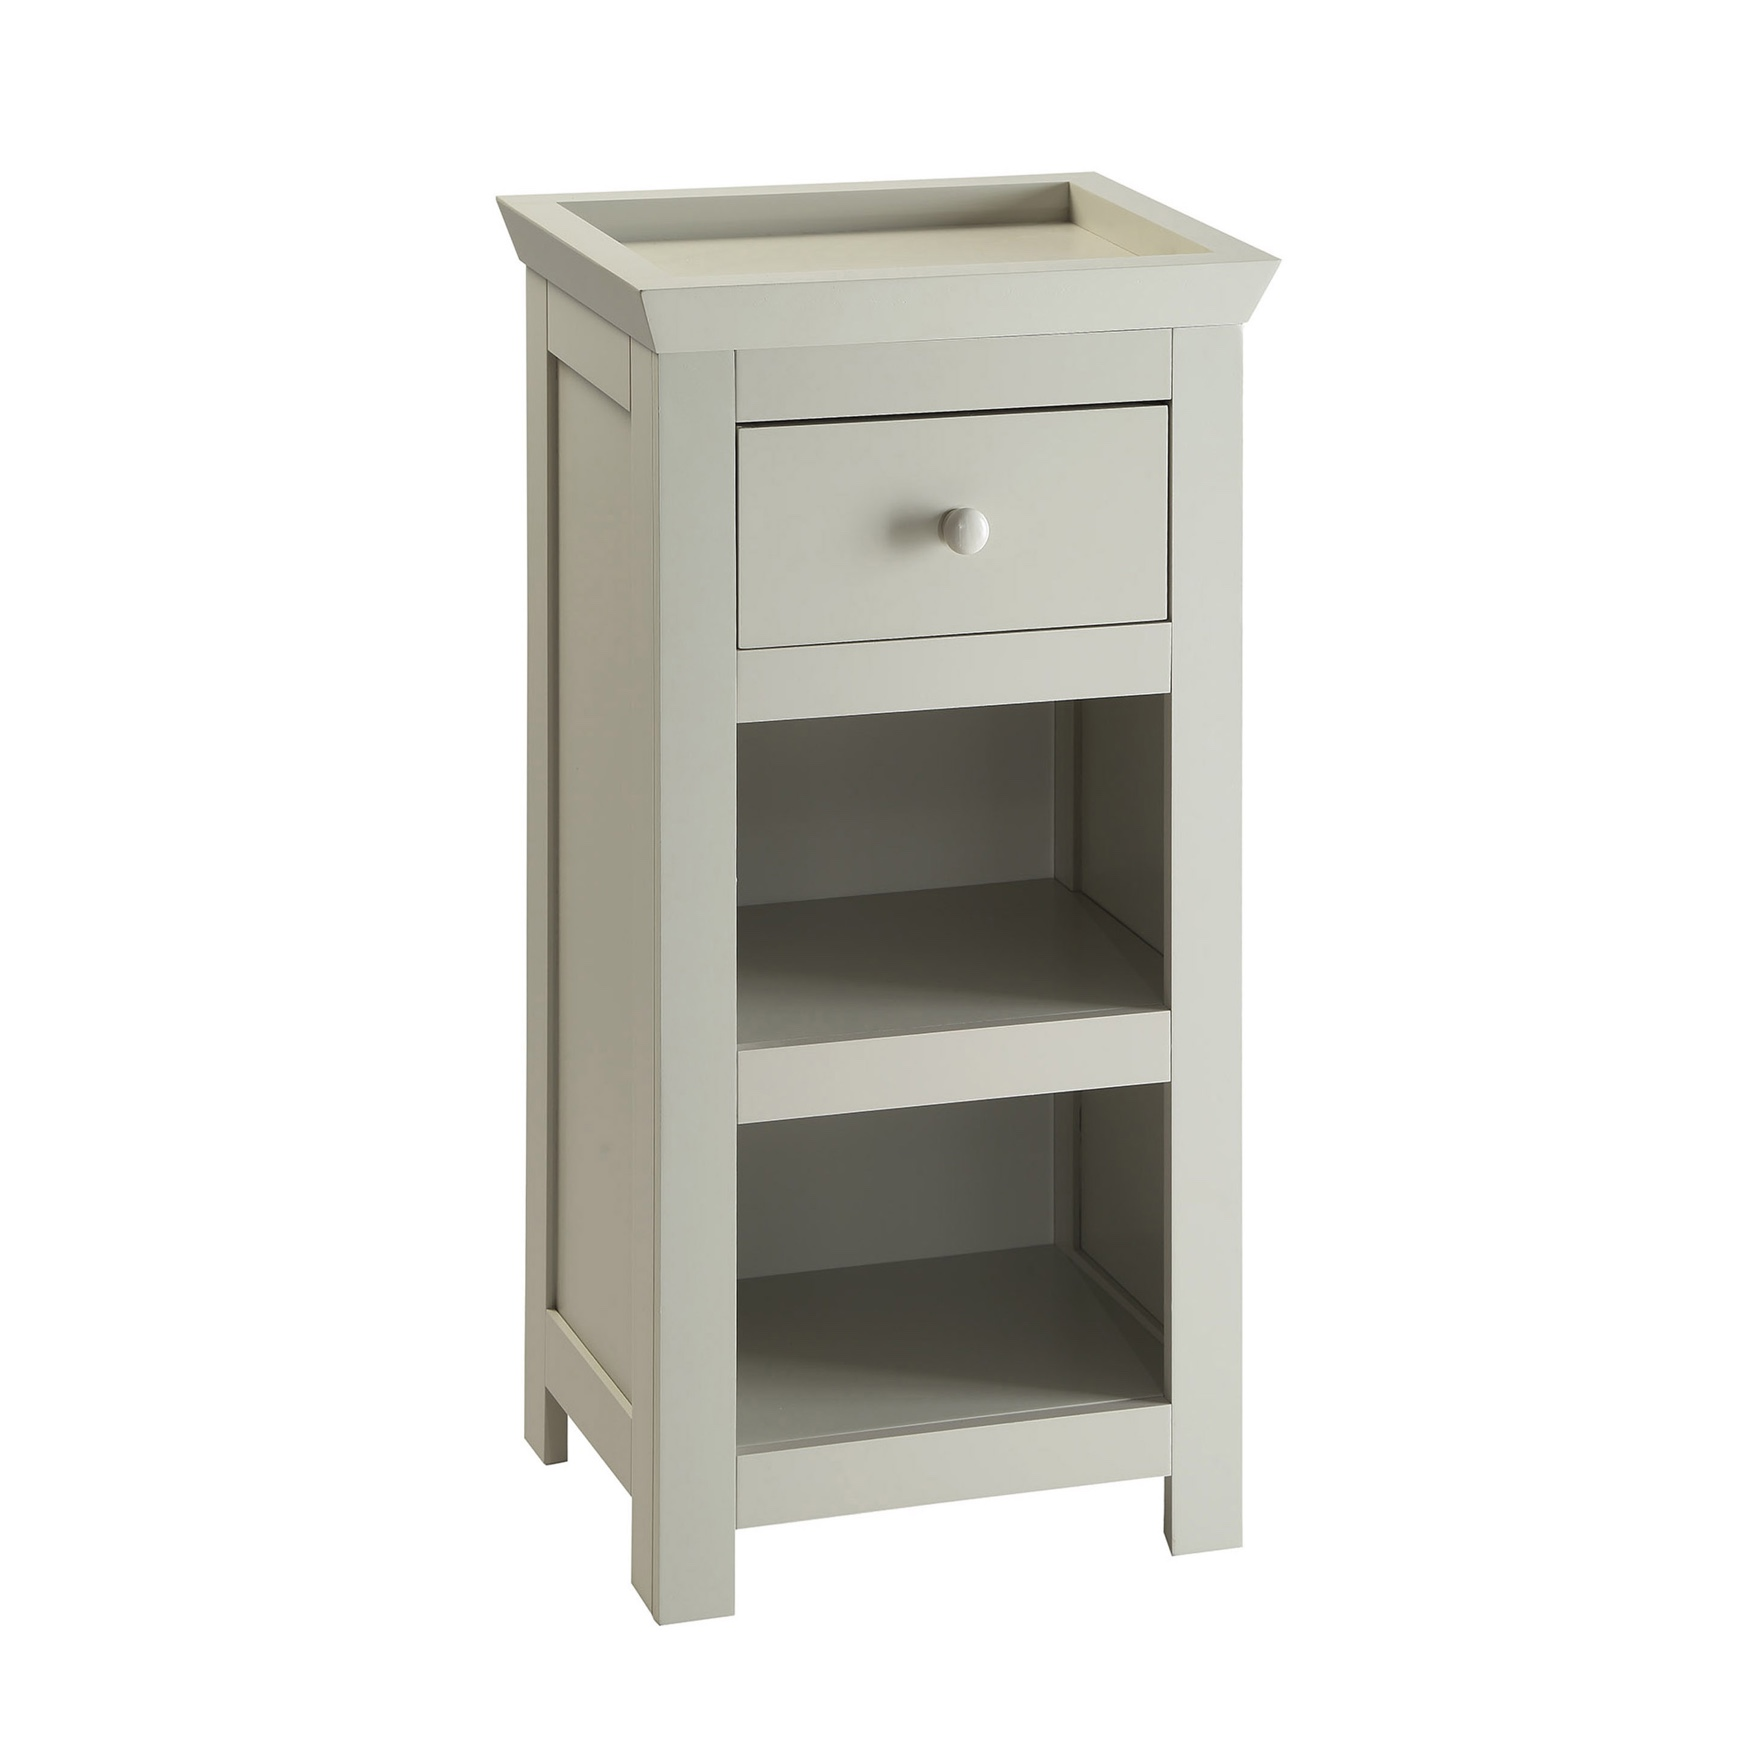 Rancho Base Cabinet, TAUPE